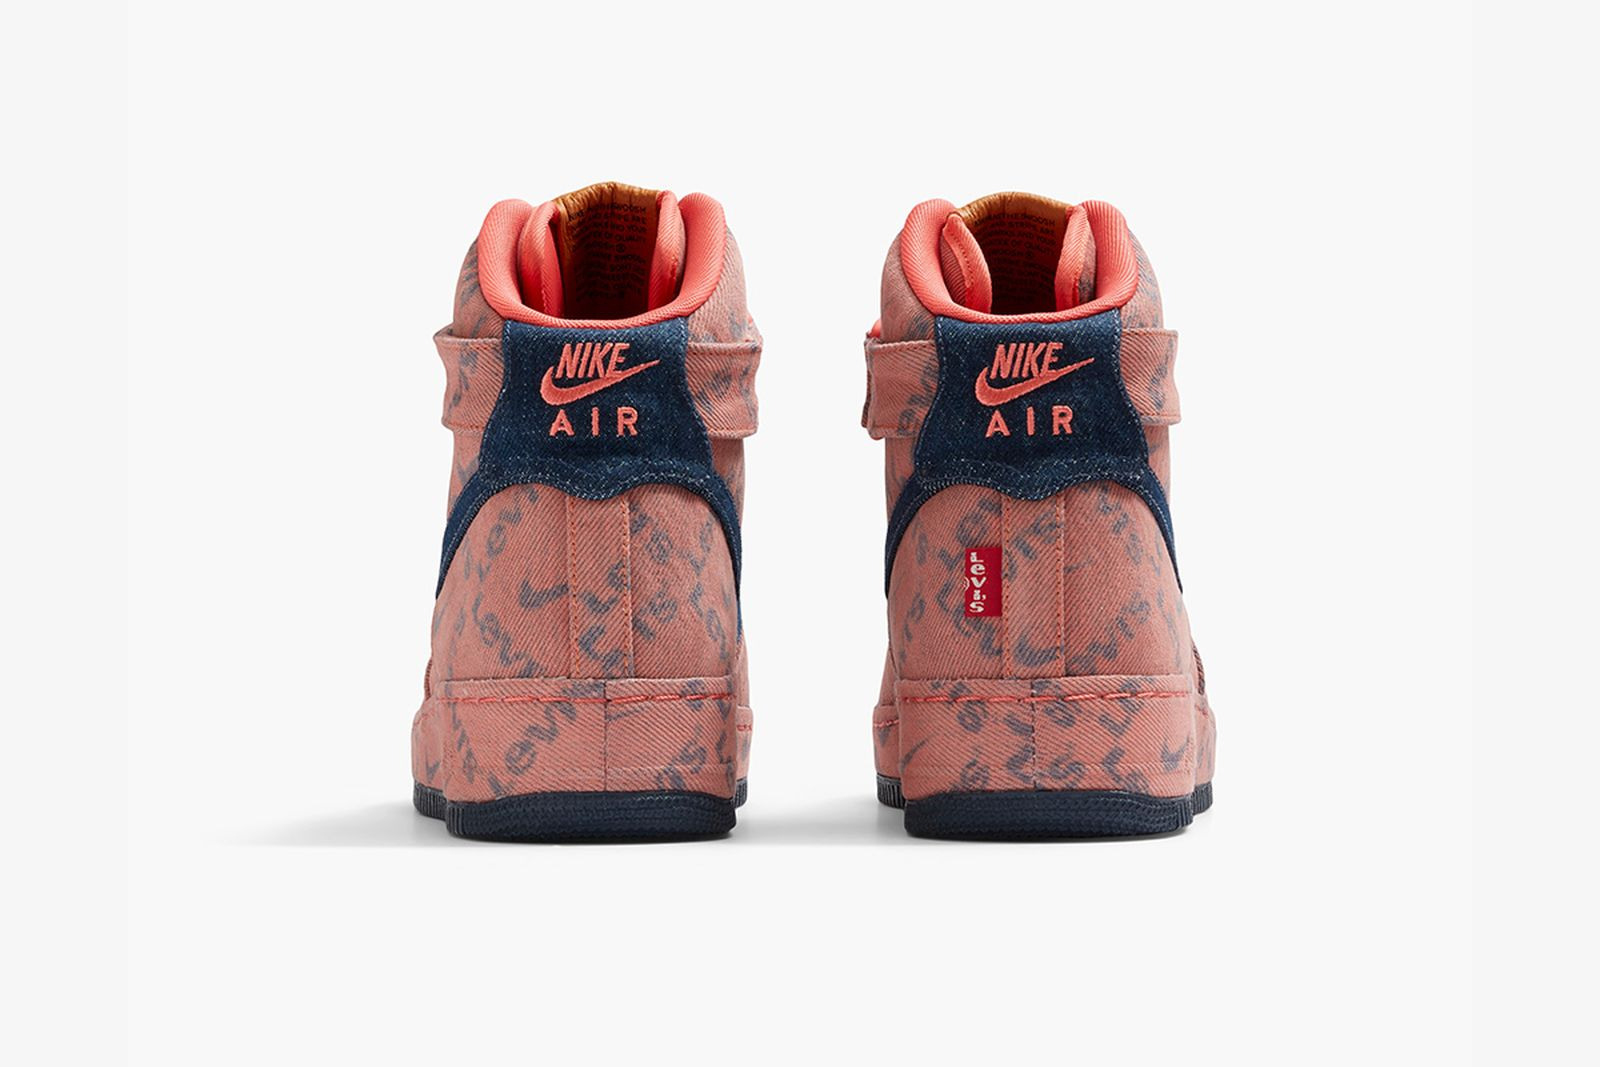 levis nike air force 1 release date price Levi's